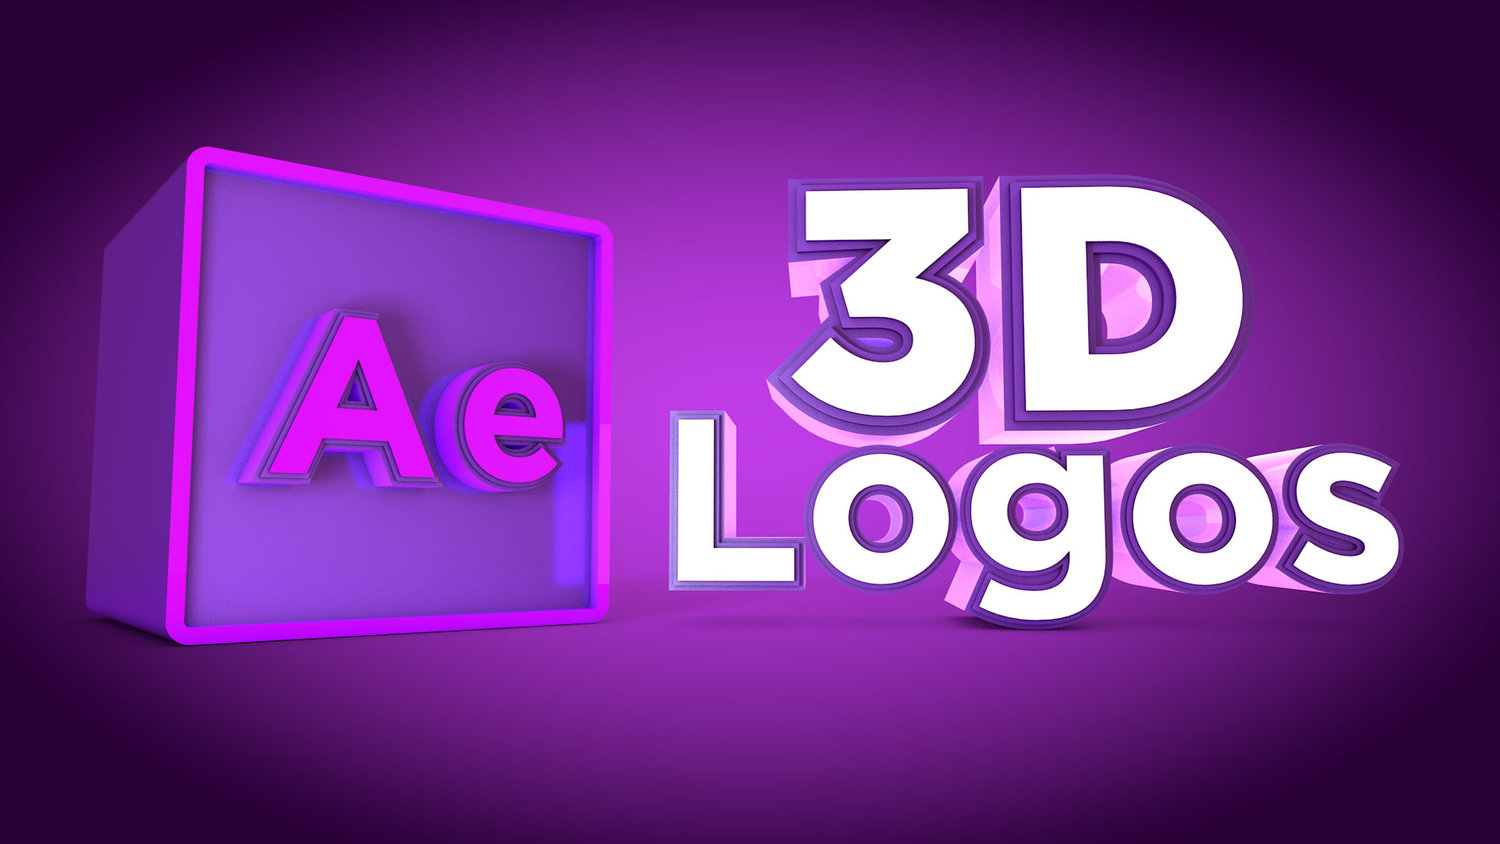 After effects tutorials for motion graphics designers motion create a 3d logo in after effects cc 2017 with the new cinema 4d renderer baditri Image collections